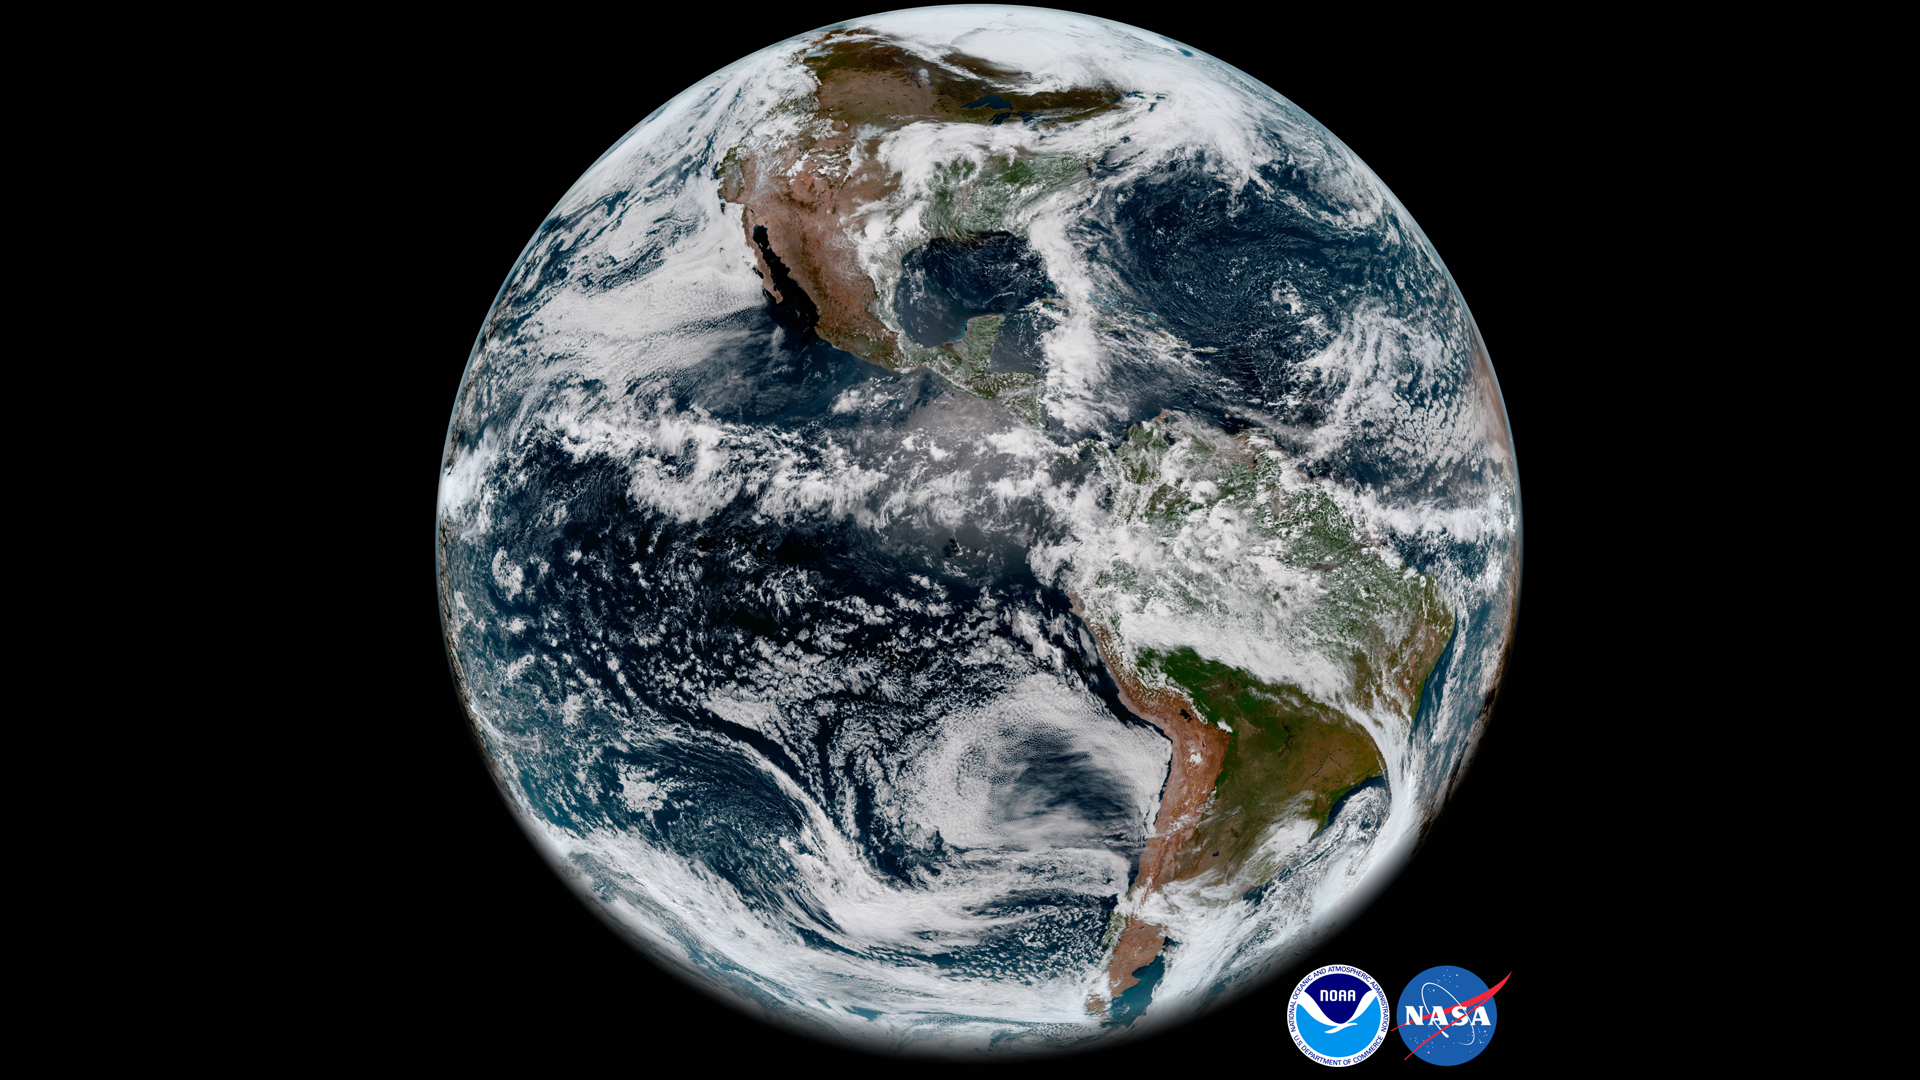 GOES-17 Releases 'First Light' Imagery from its Advanced Baseline Imager (ABI)